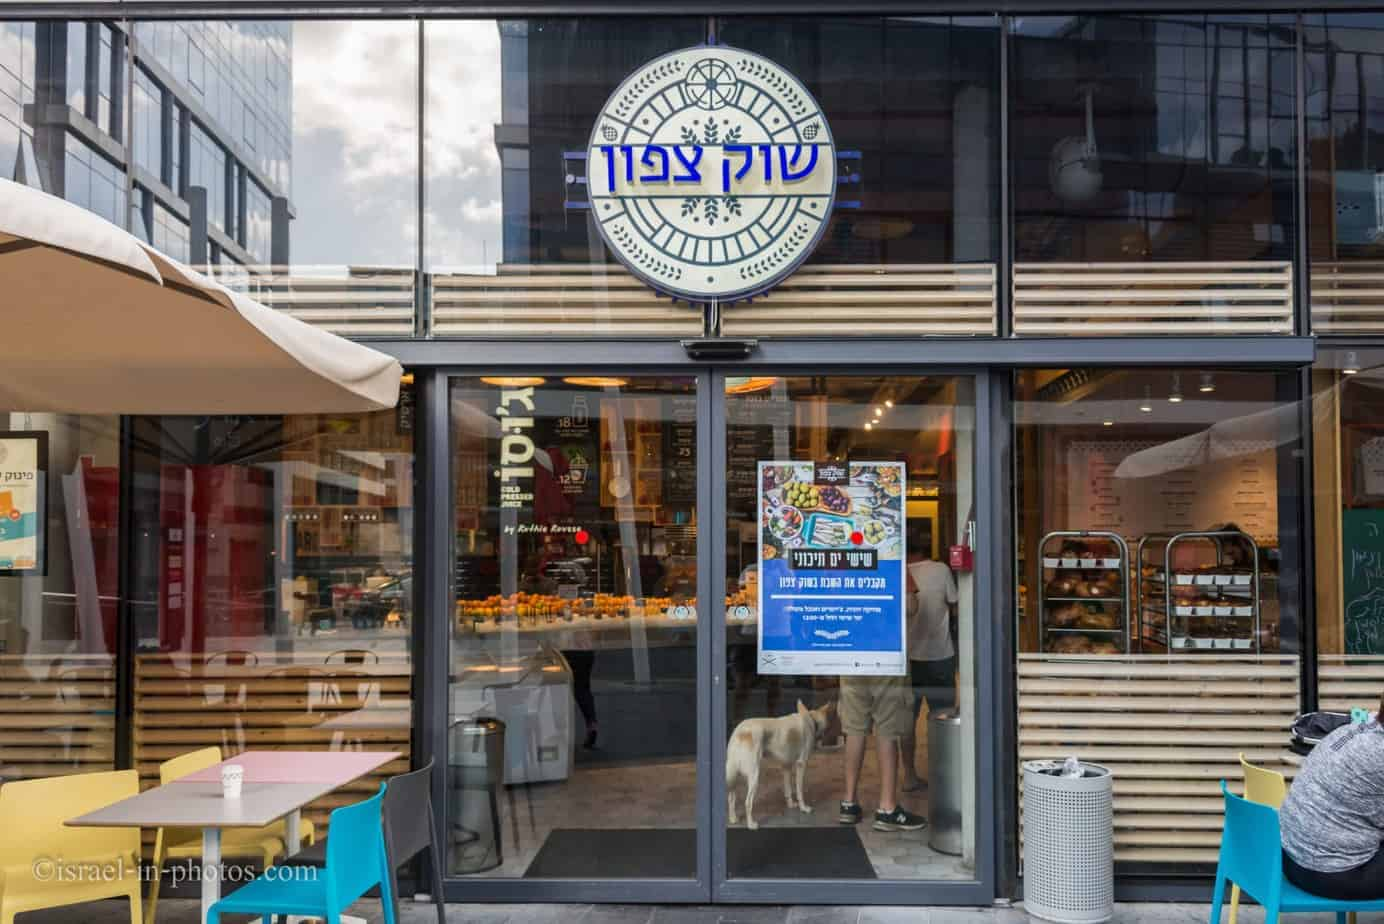 New Markets Of Tel Aviv - North Market in Tel Aviv